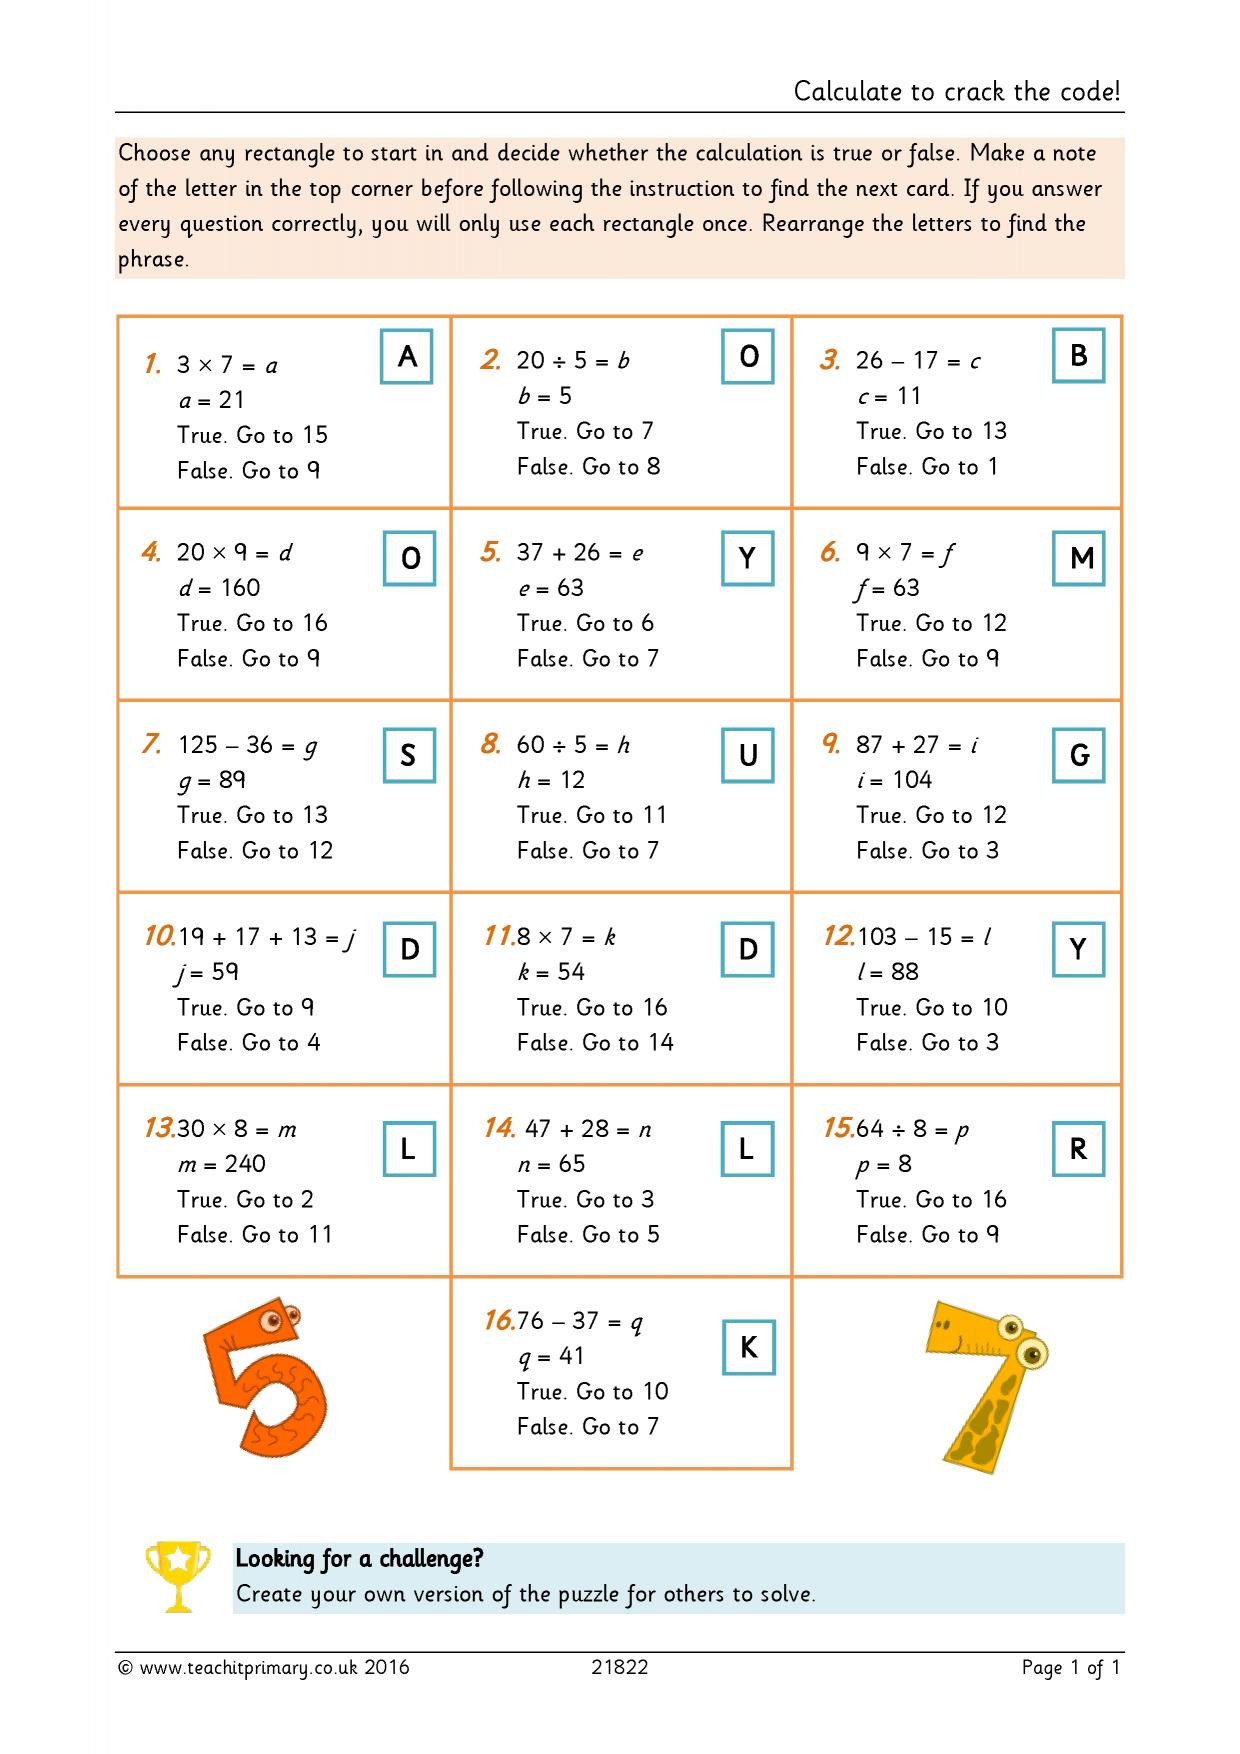 Crack the Code Worksheets Printable Ks1 Addition and Subtraction the Basics